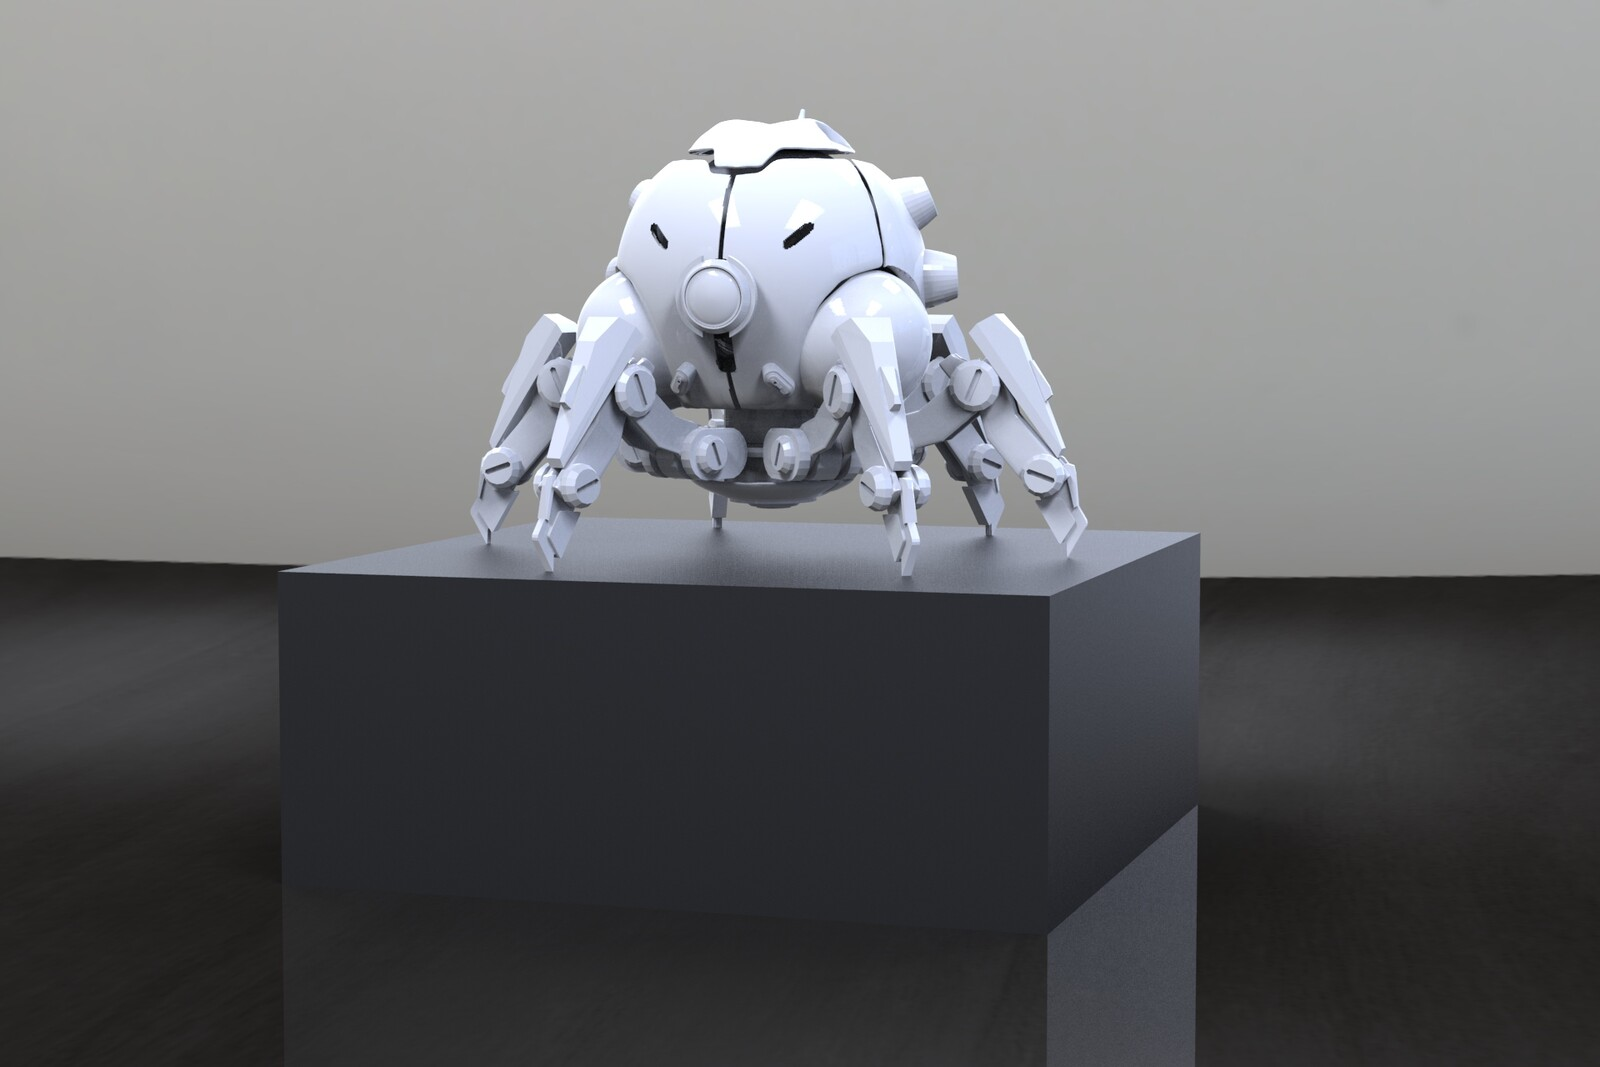 ZBrush Model rendered in  Keyshot